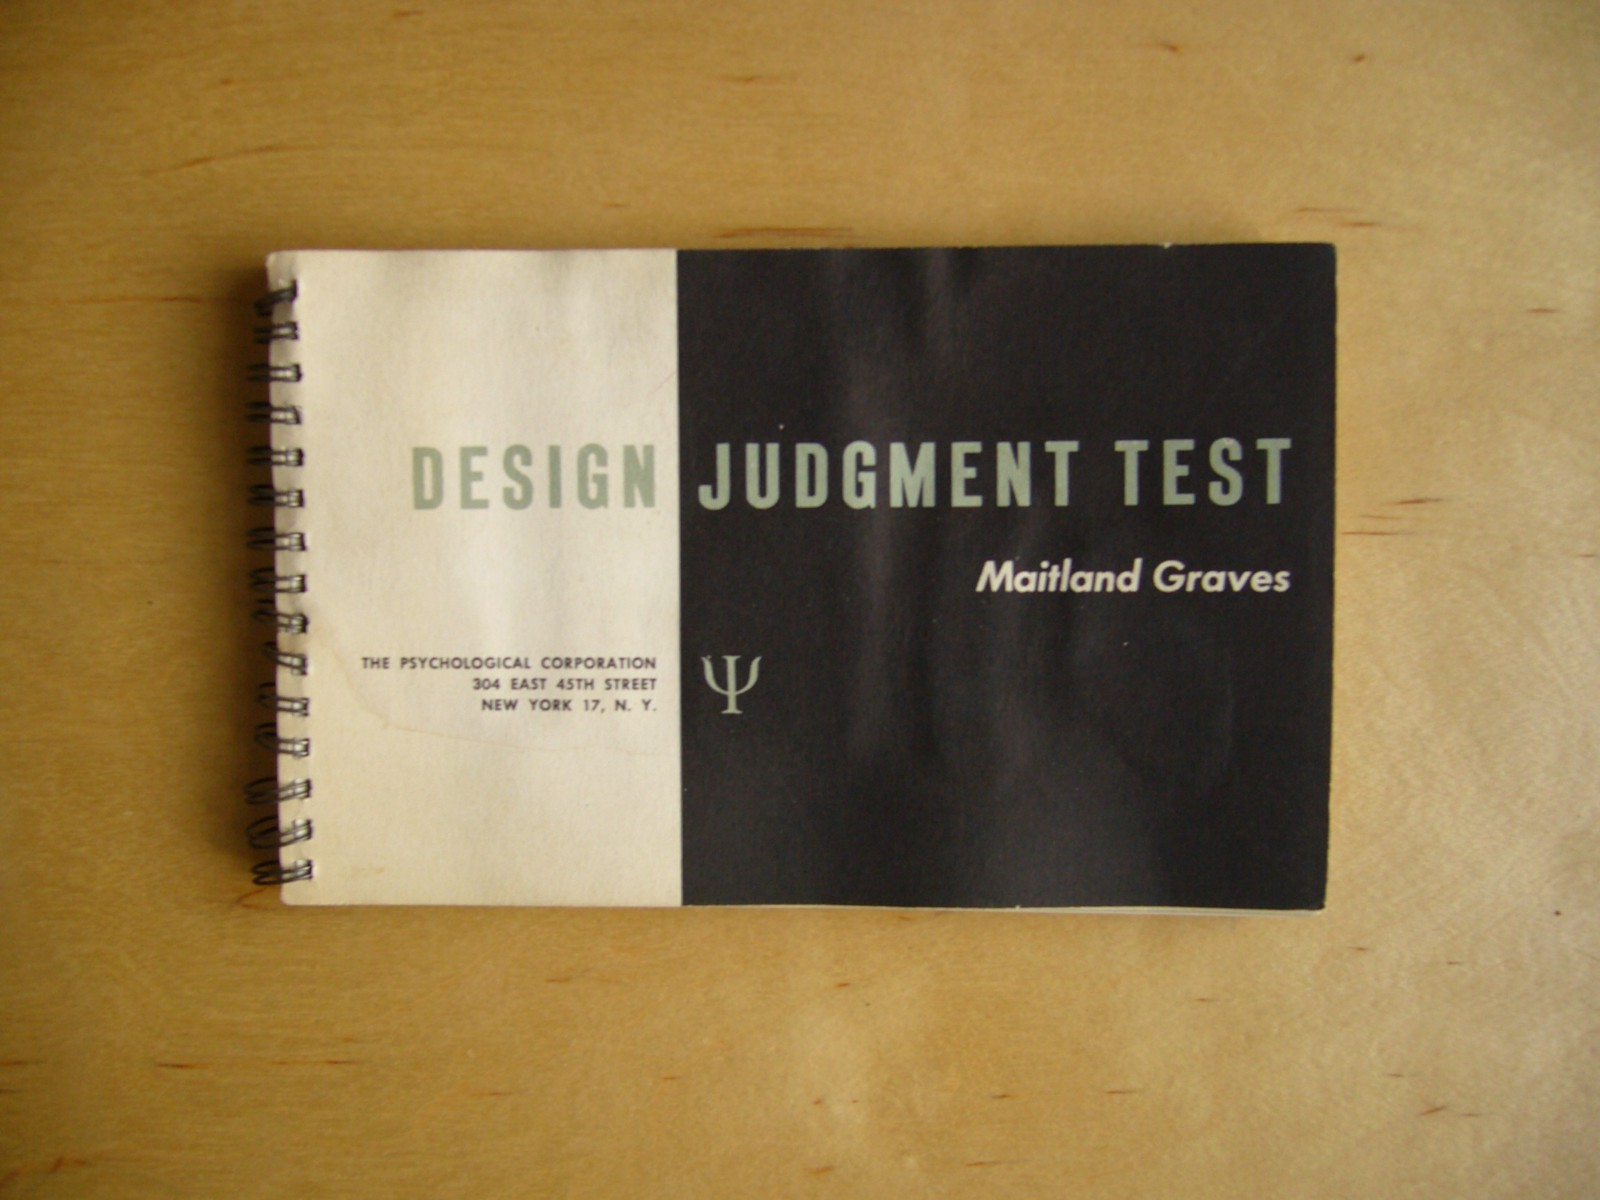 A Design Judgement Test